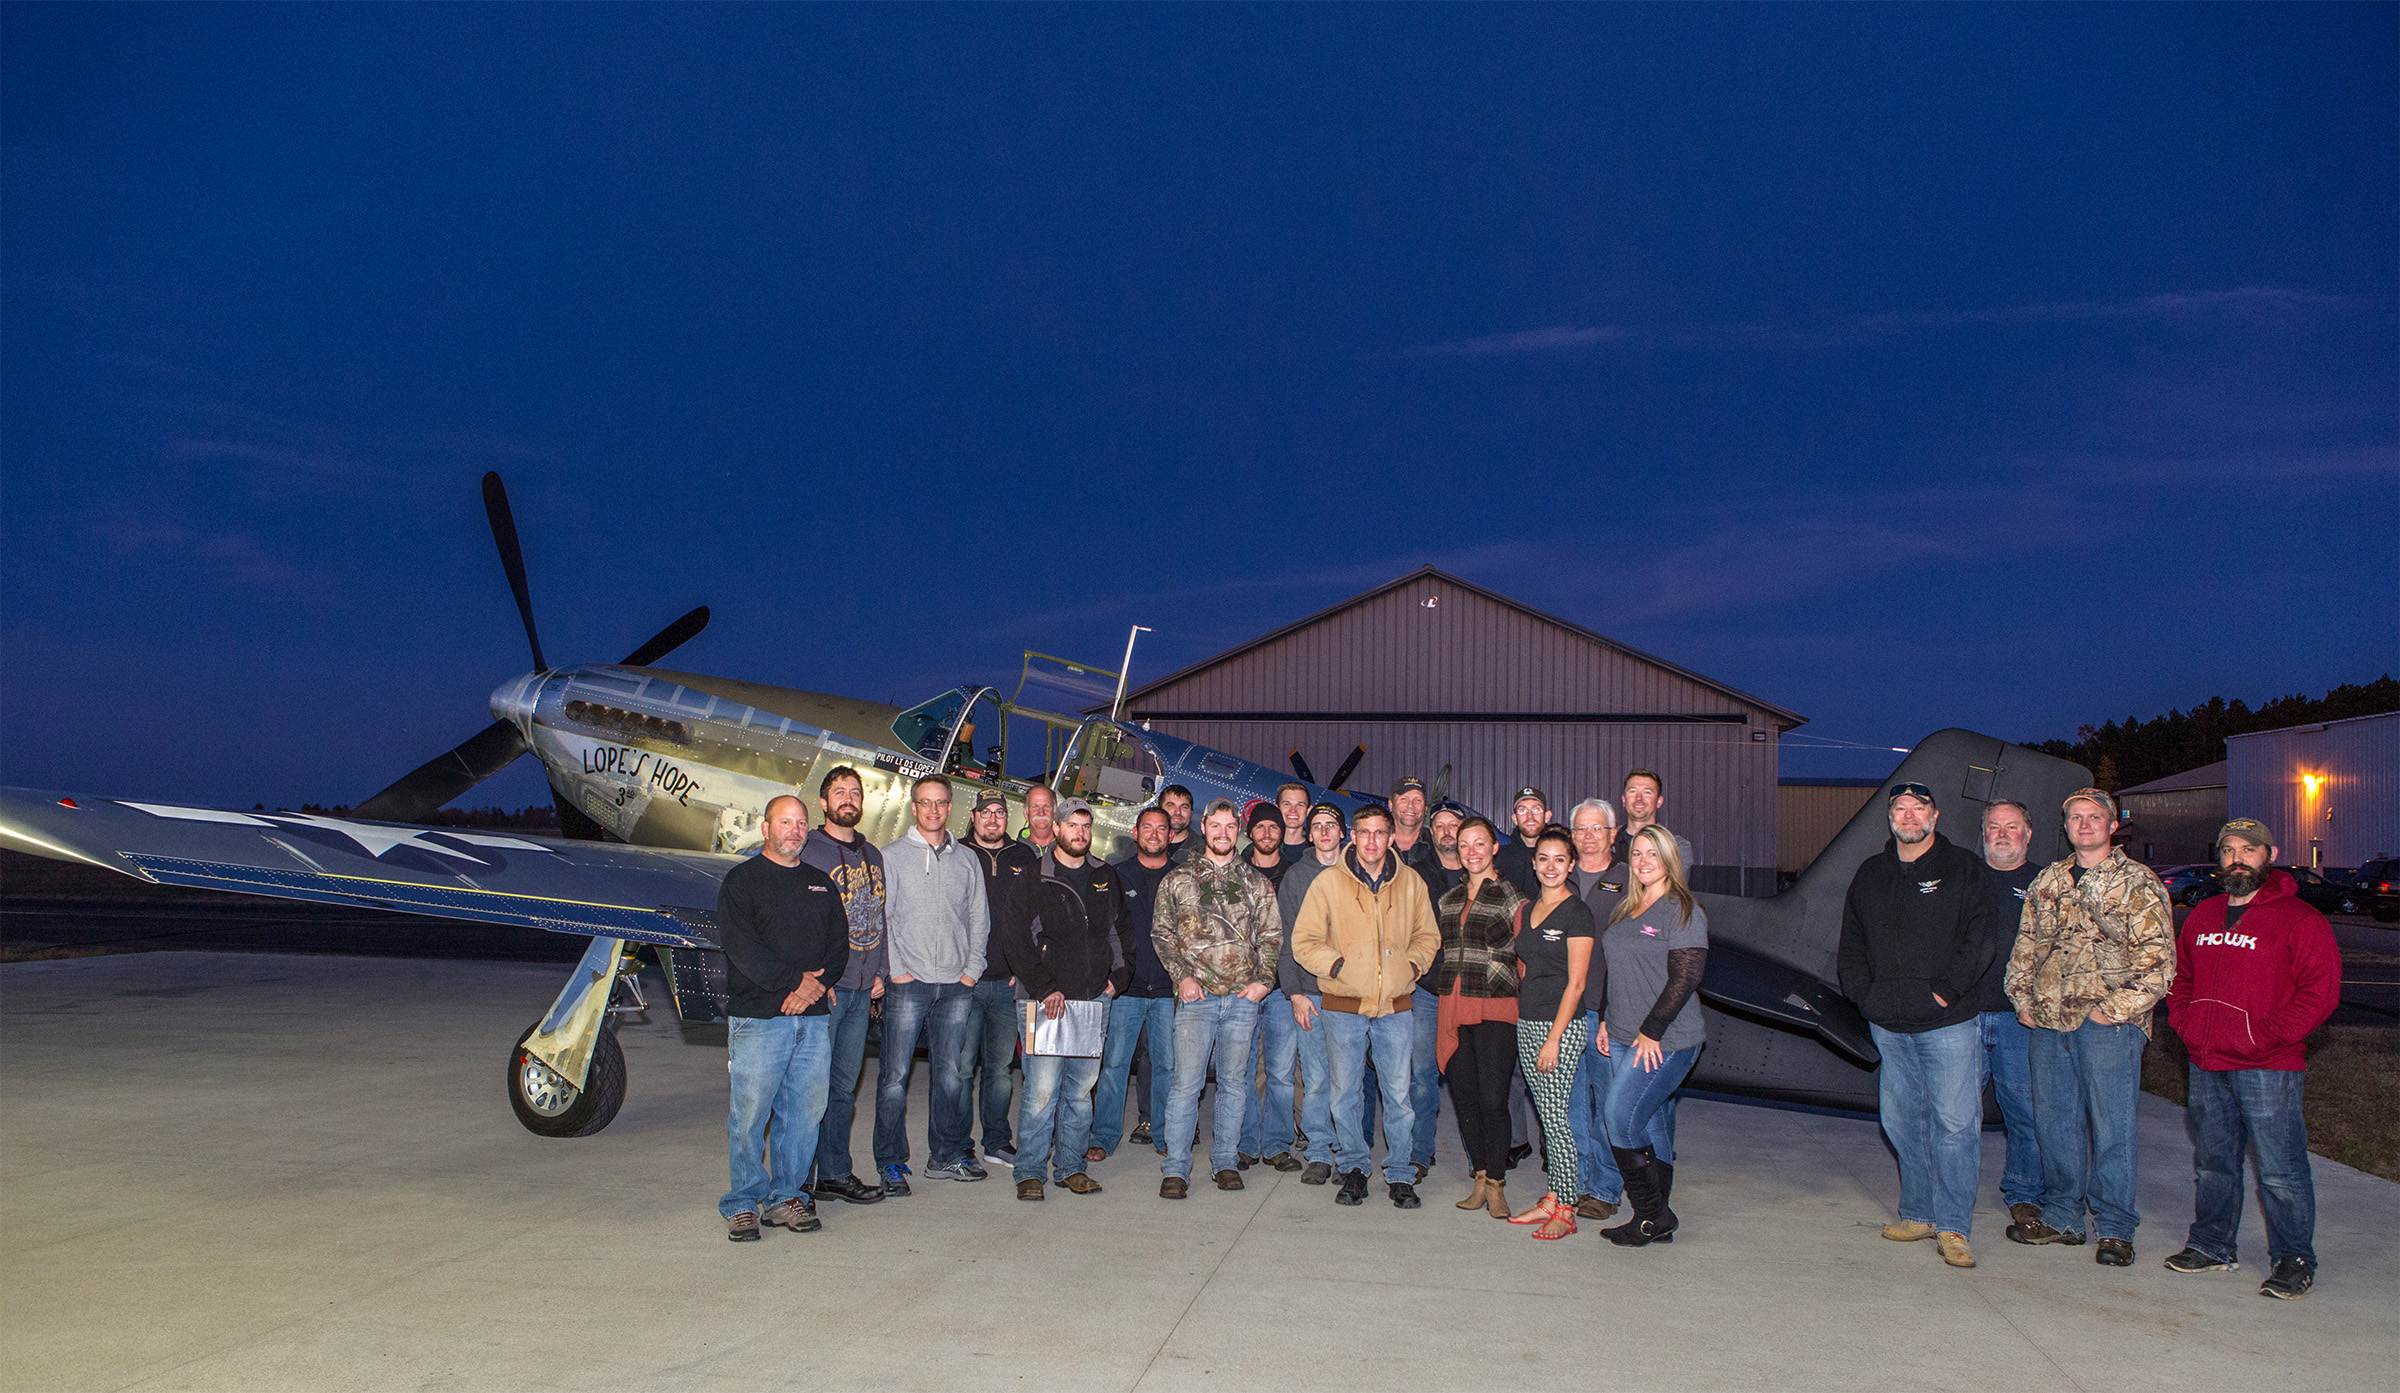 A very pleased AirCorps Aviation crew poses in front of Lope's Hope 3rd after a squawk-free test flight. (photo by John LaTourelle via AirCorps Aviation)